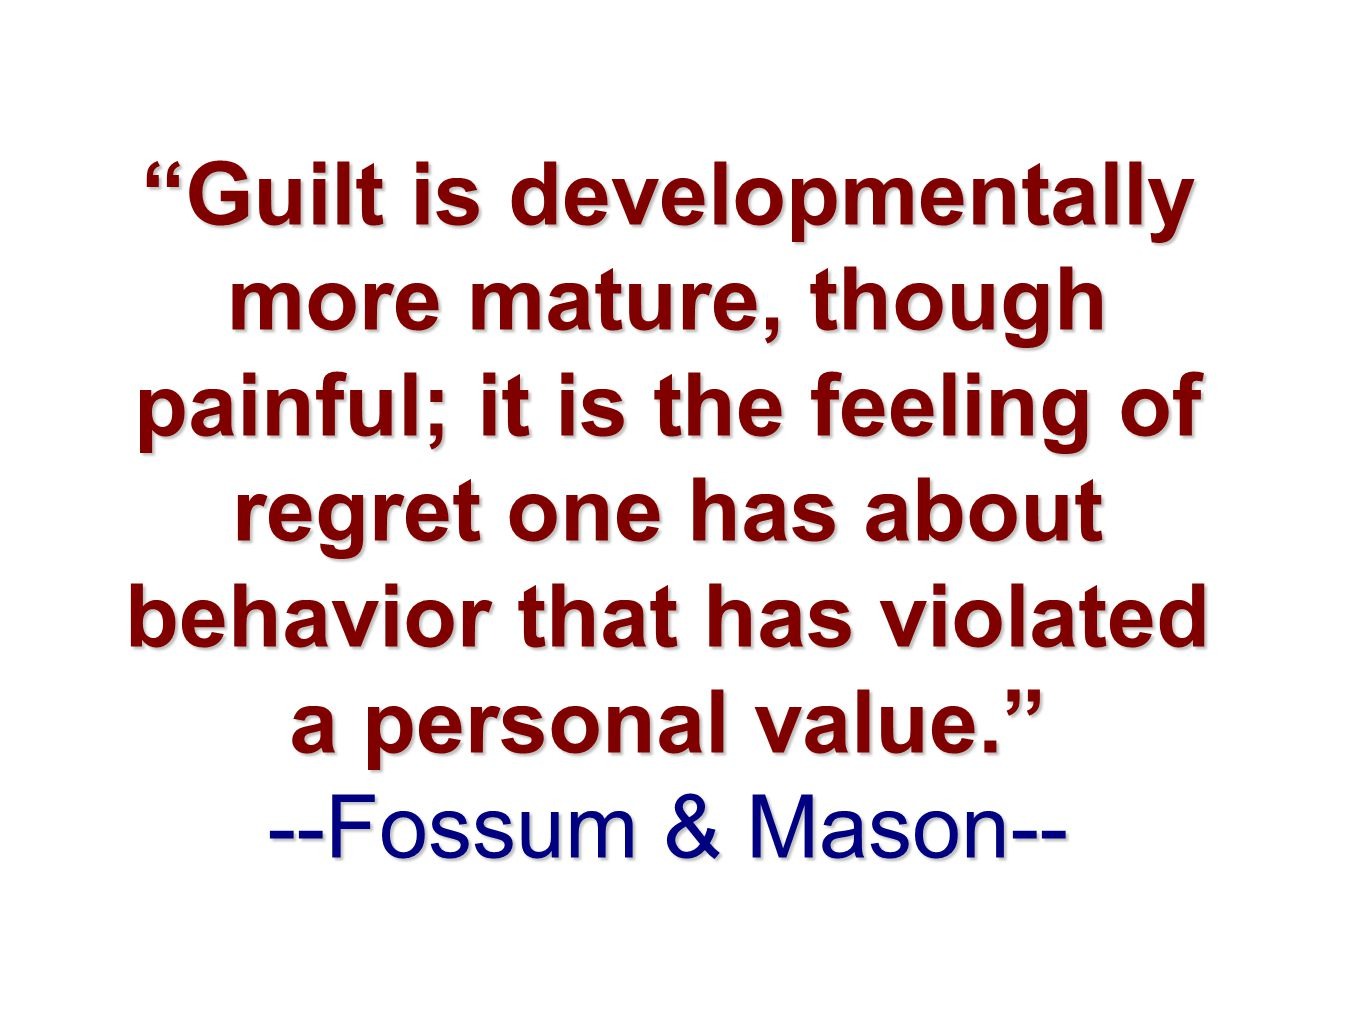 """Guilt is developmentally more mature, though painful; it is the feeling of regret one has about behavior that has violated a personal value."" --Fossu"